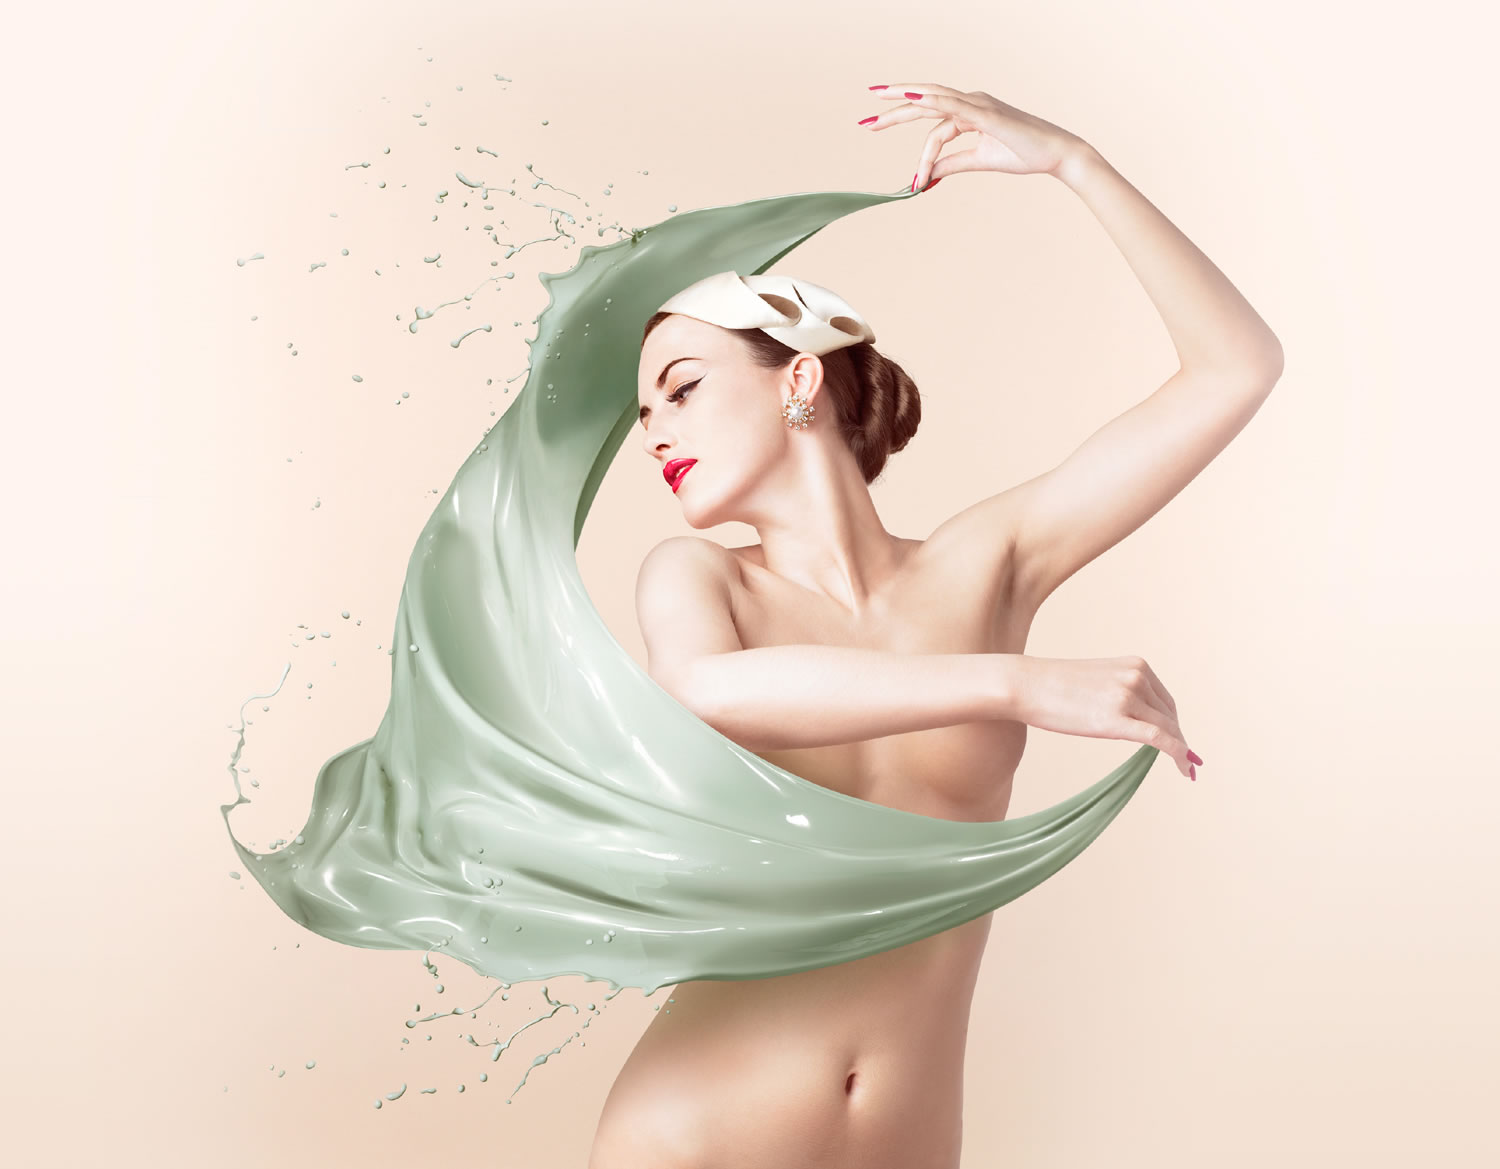 woman swirling paint cloth